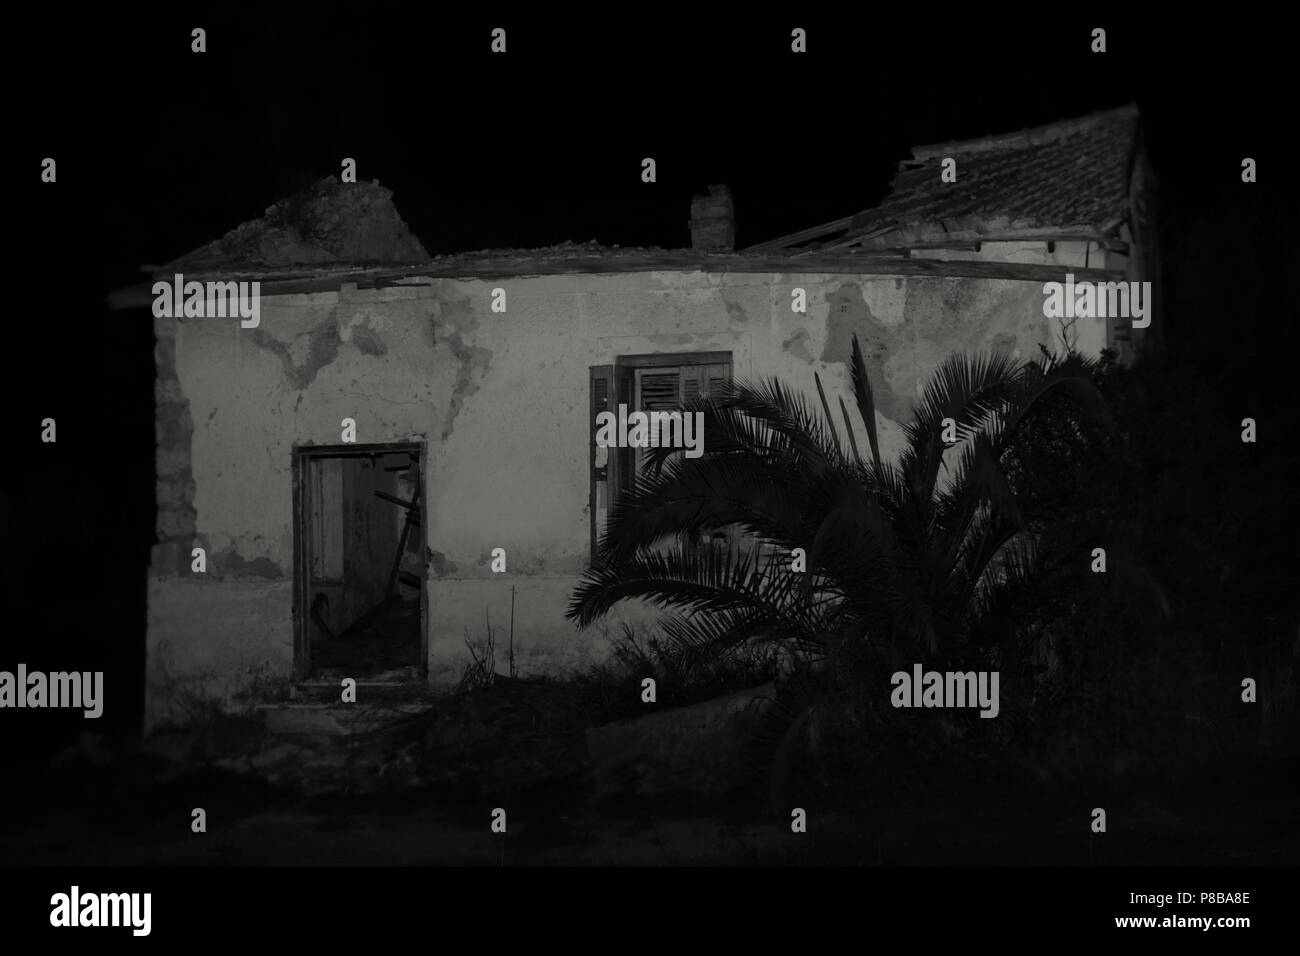 Abandoned House And Overgrown Plants At Night Black And